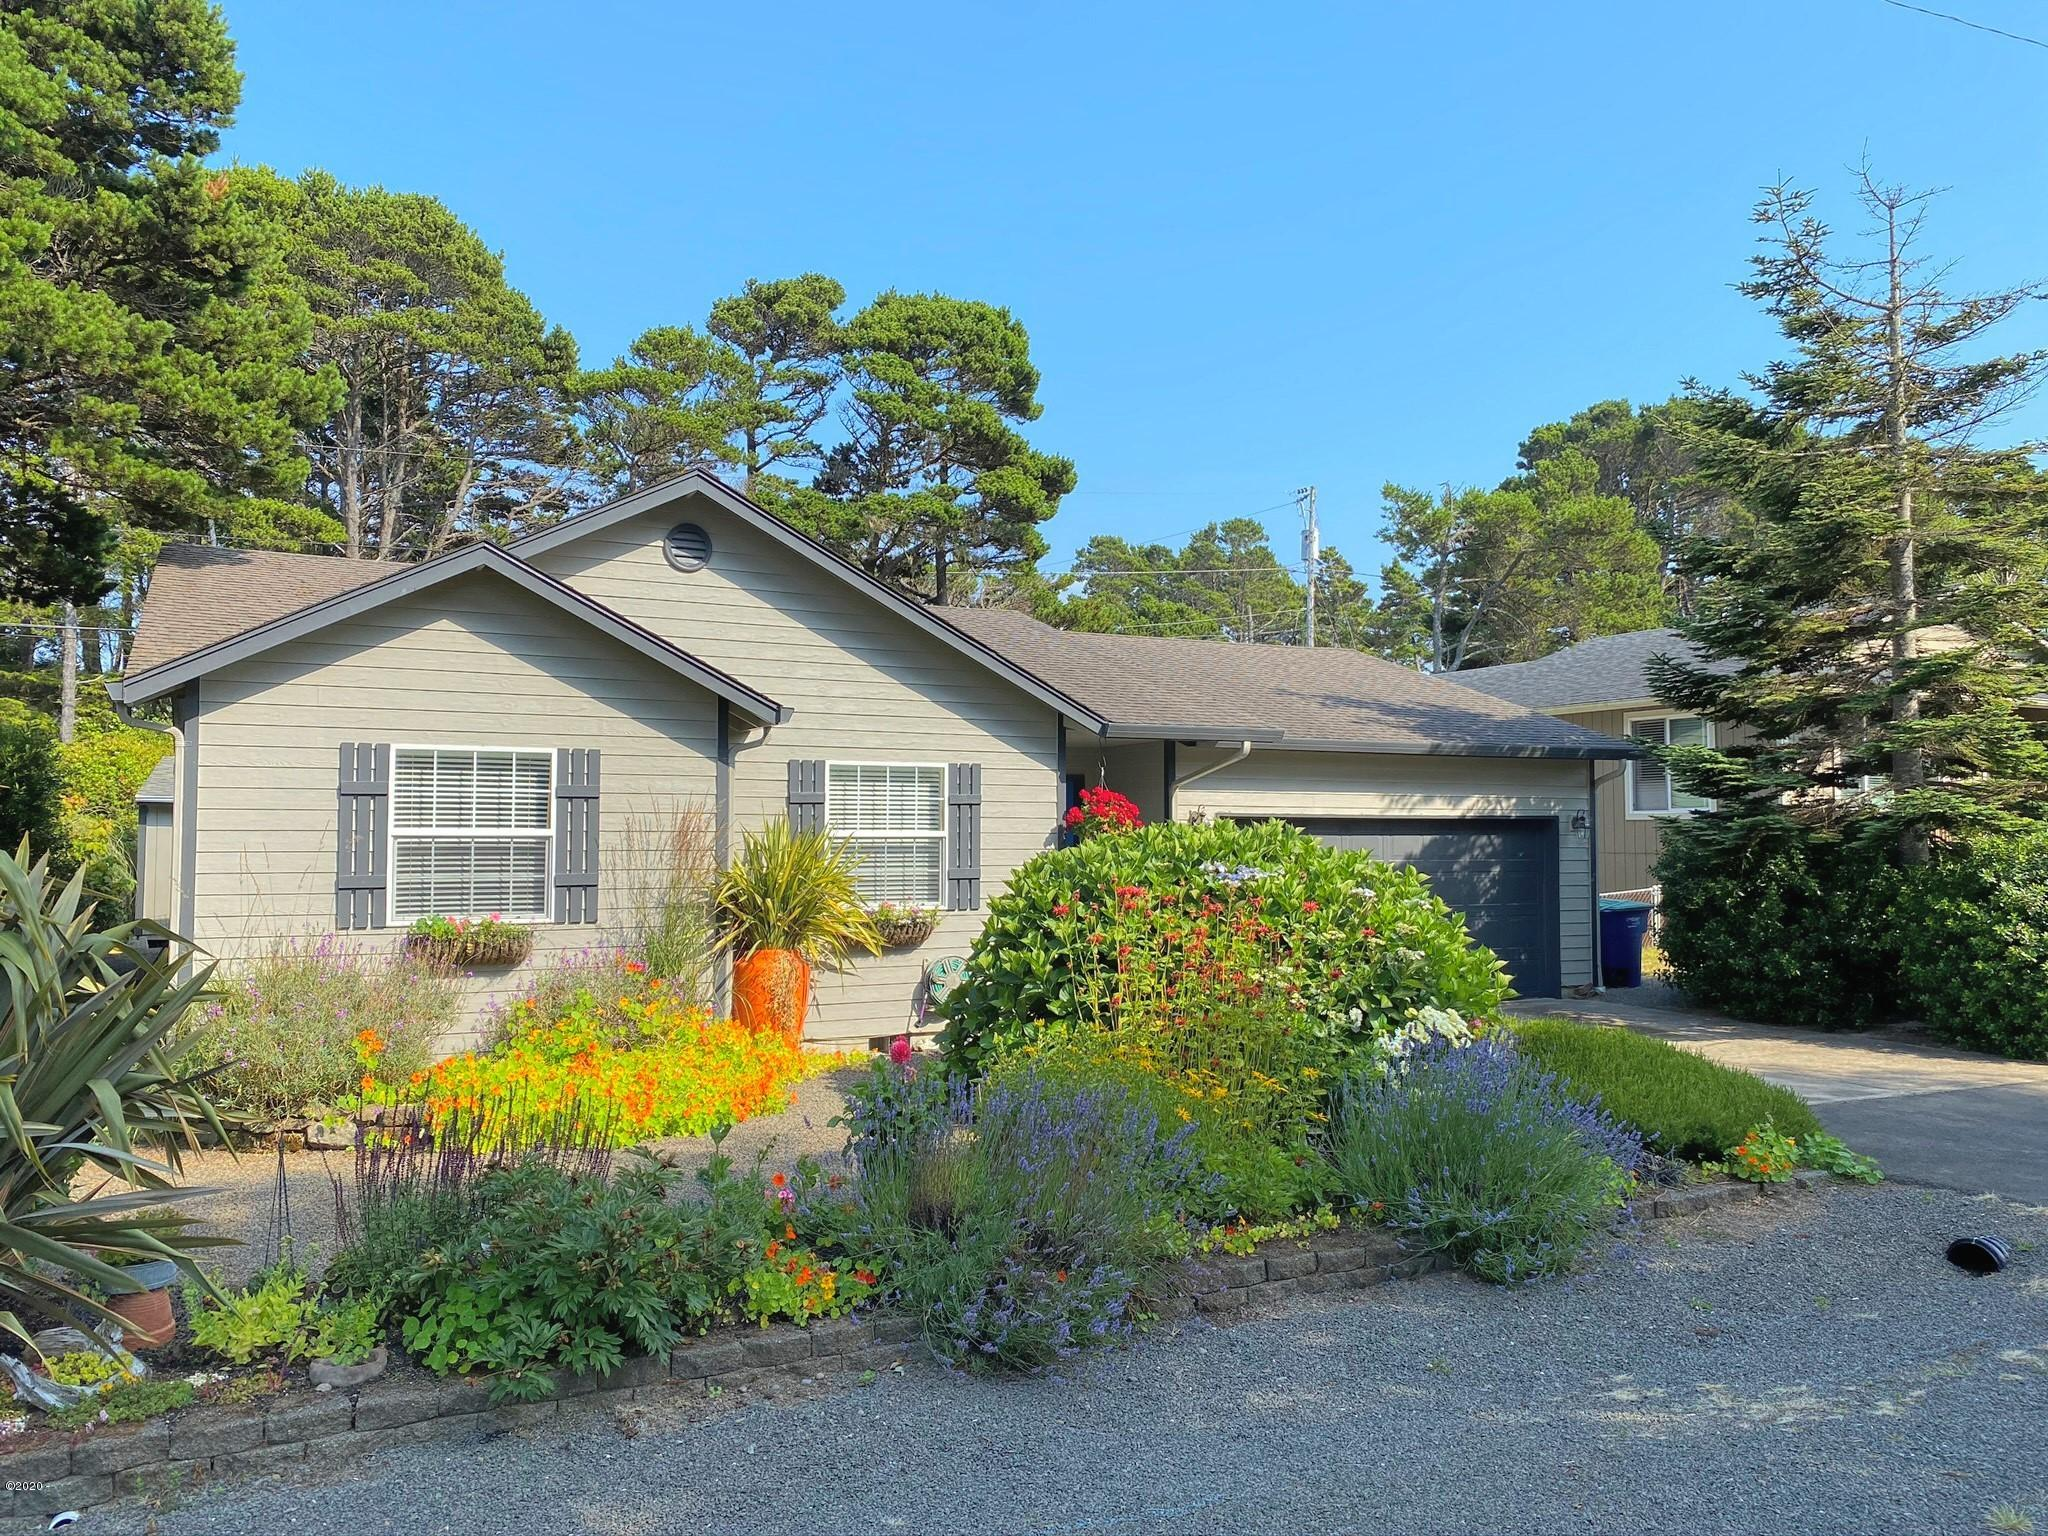 5860 Hacienda Ave, Gleneden Beach, OR 97388